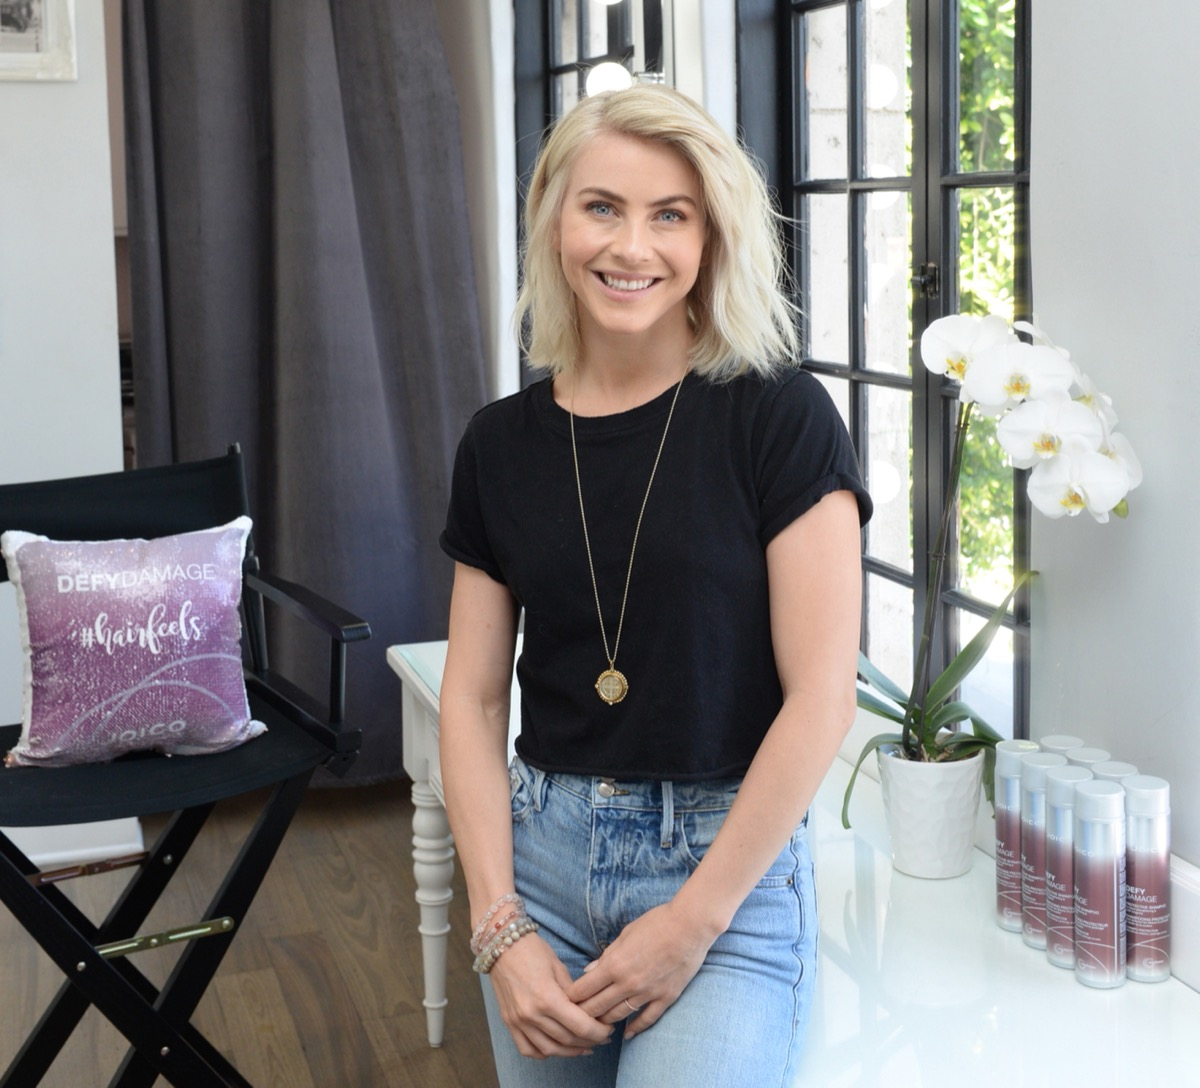 julianne hough smiling in black shirt and jeans